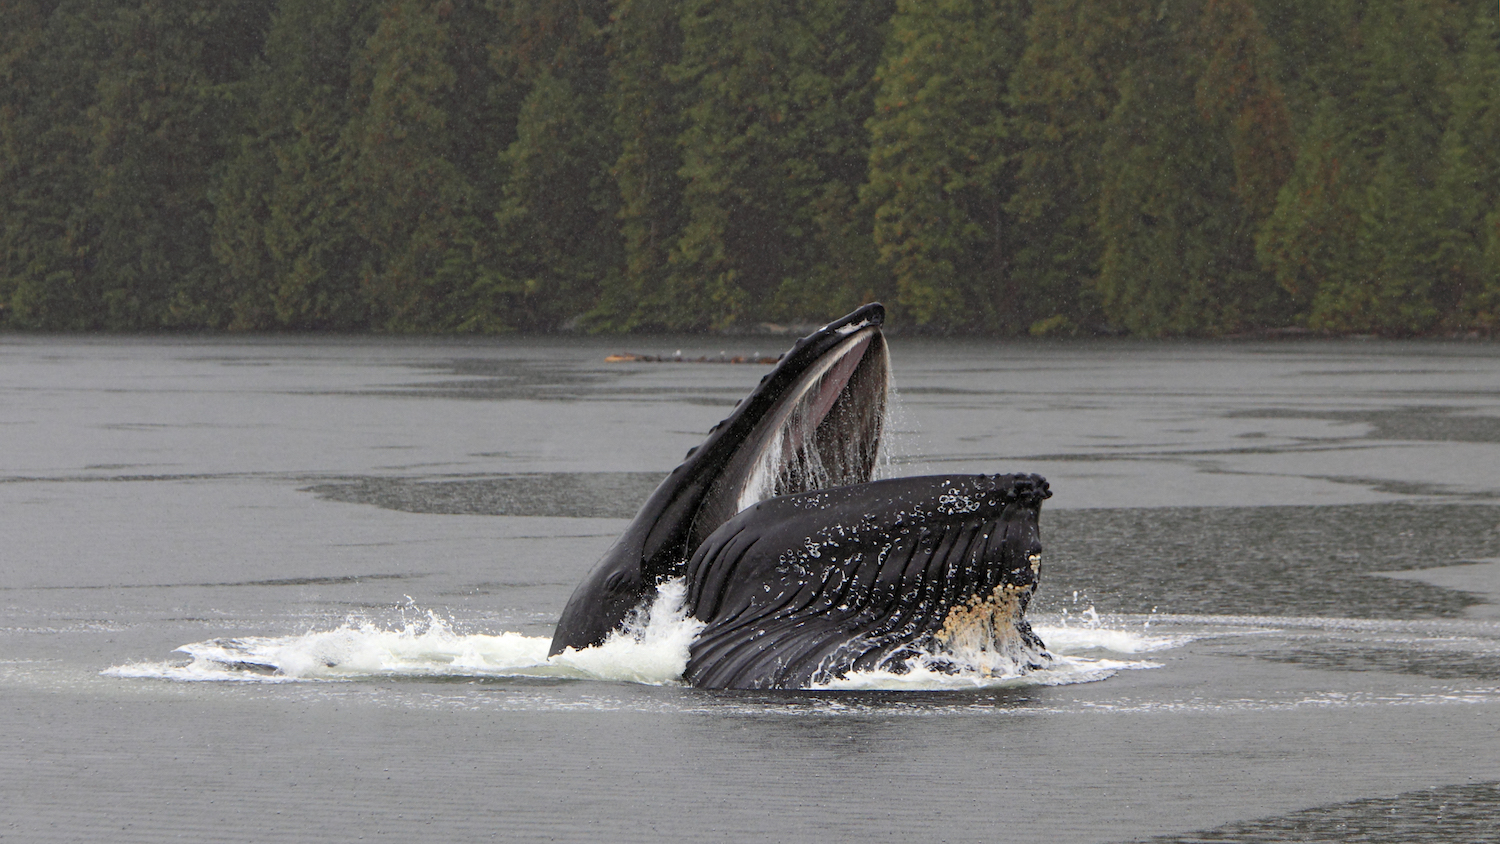 Humpback whales Alaska salmon hatcheries